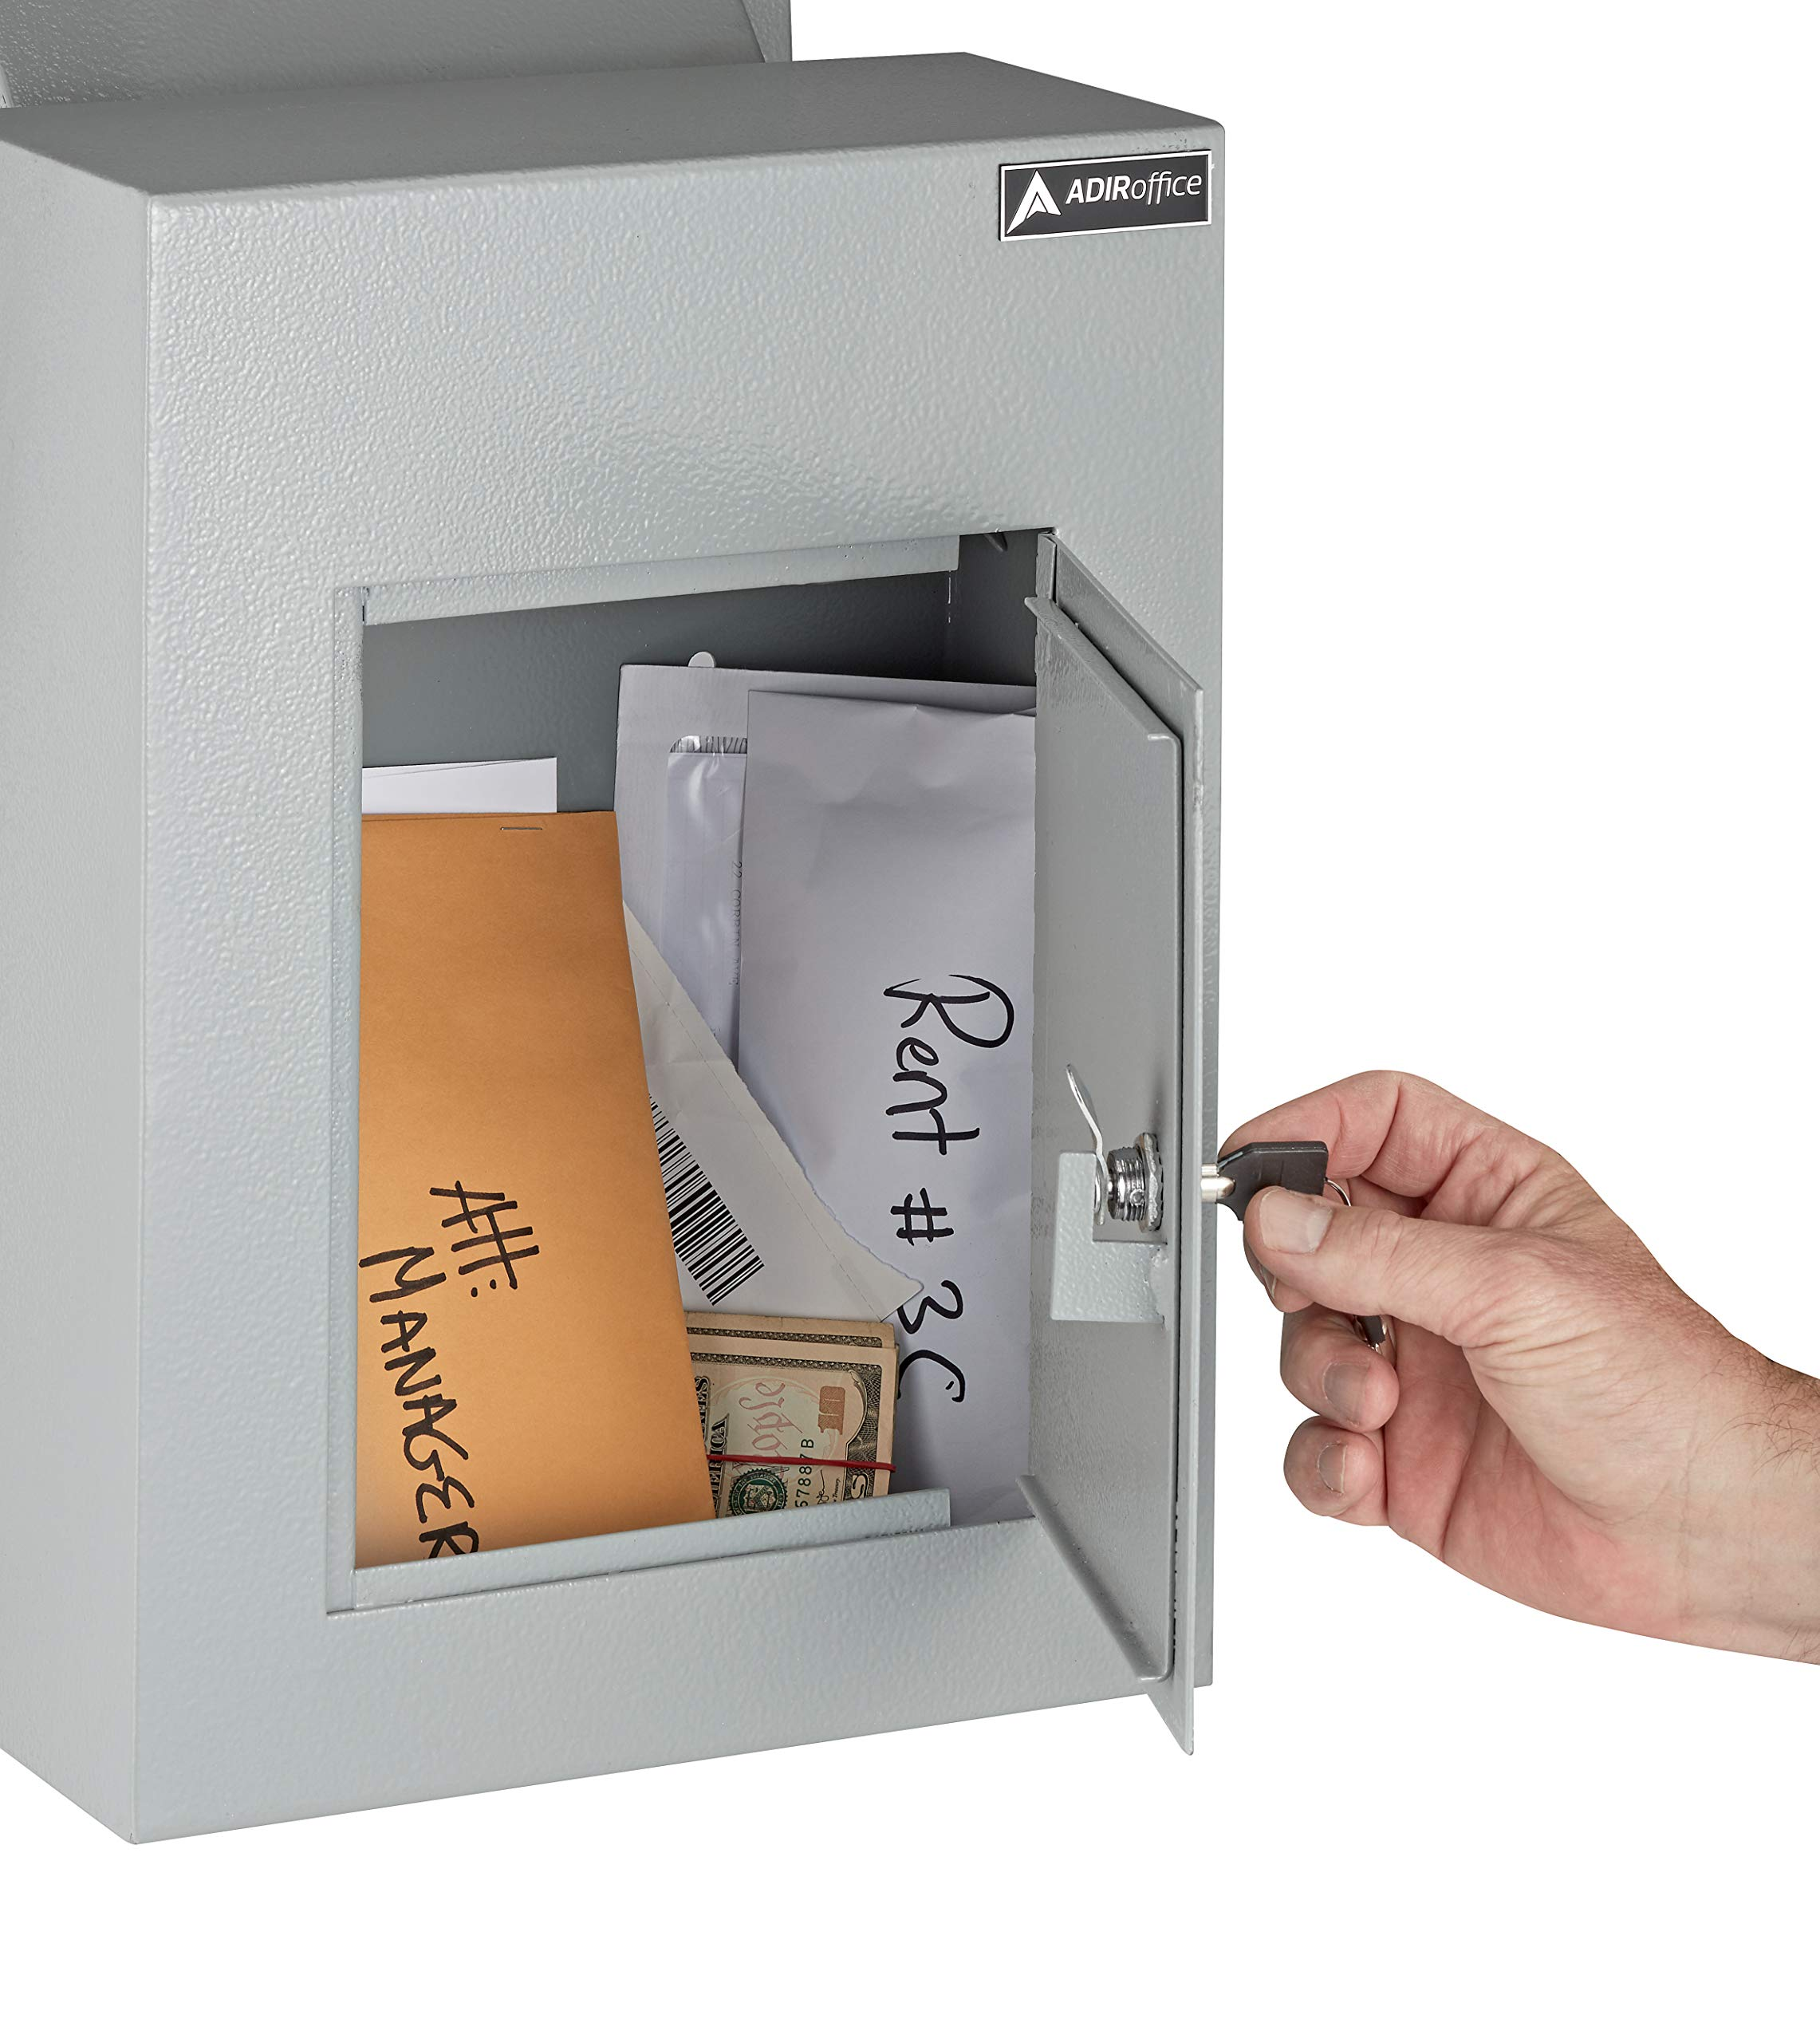 AdirOffice Through The Wall Drop Box Safe (Black/Grey/White) - Durable Thick Steel w/Adjustable Chute - Mail Vault for Home Office Hotel Apartment (Grey) by AdirOffice (Image #4)